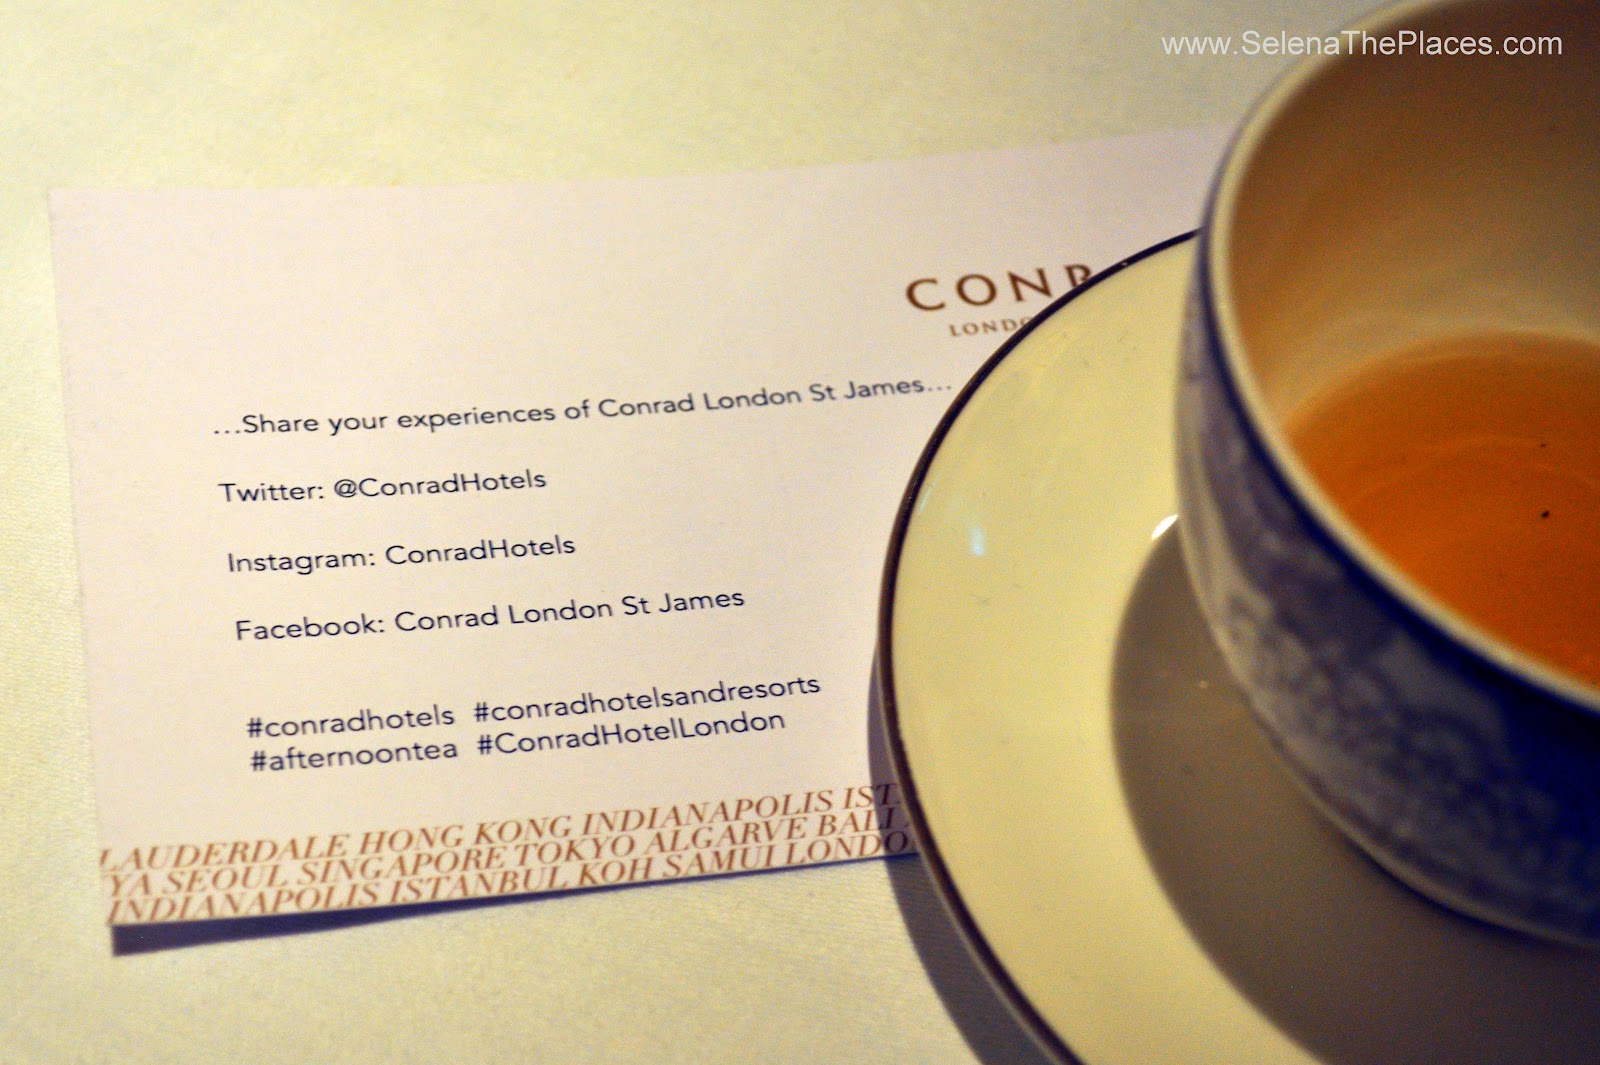 Conrad London St. James #LDNBloggersTea